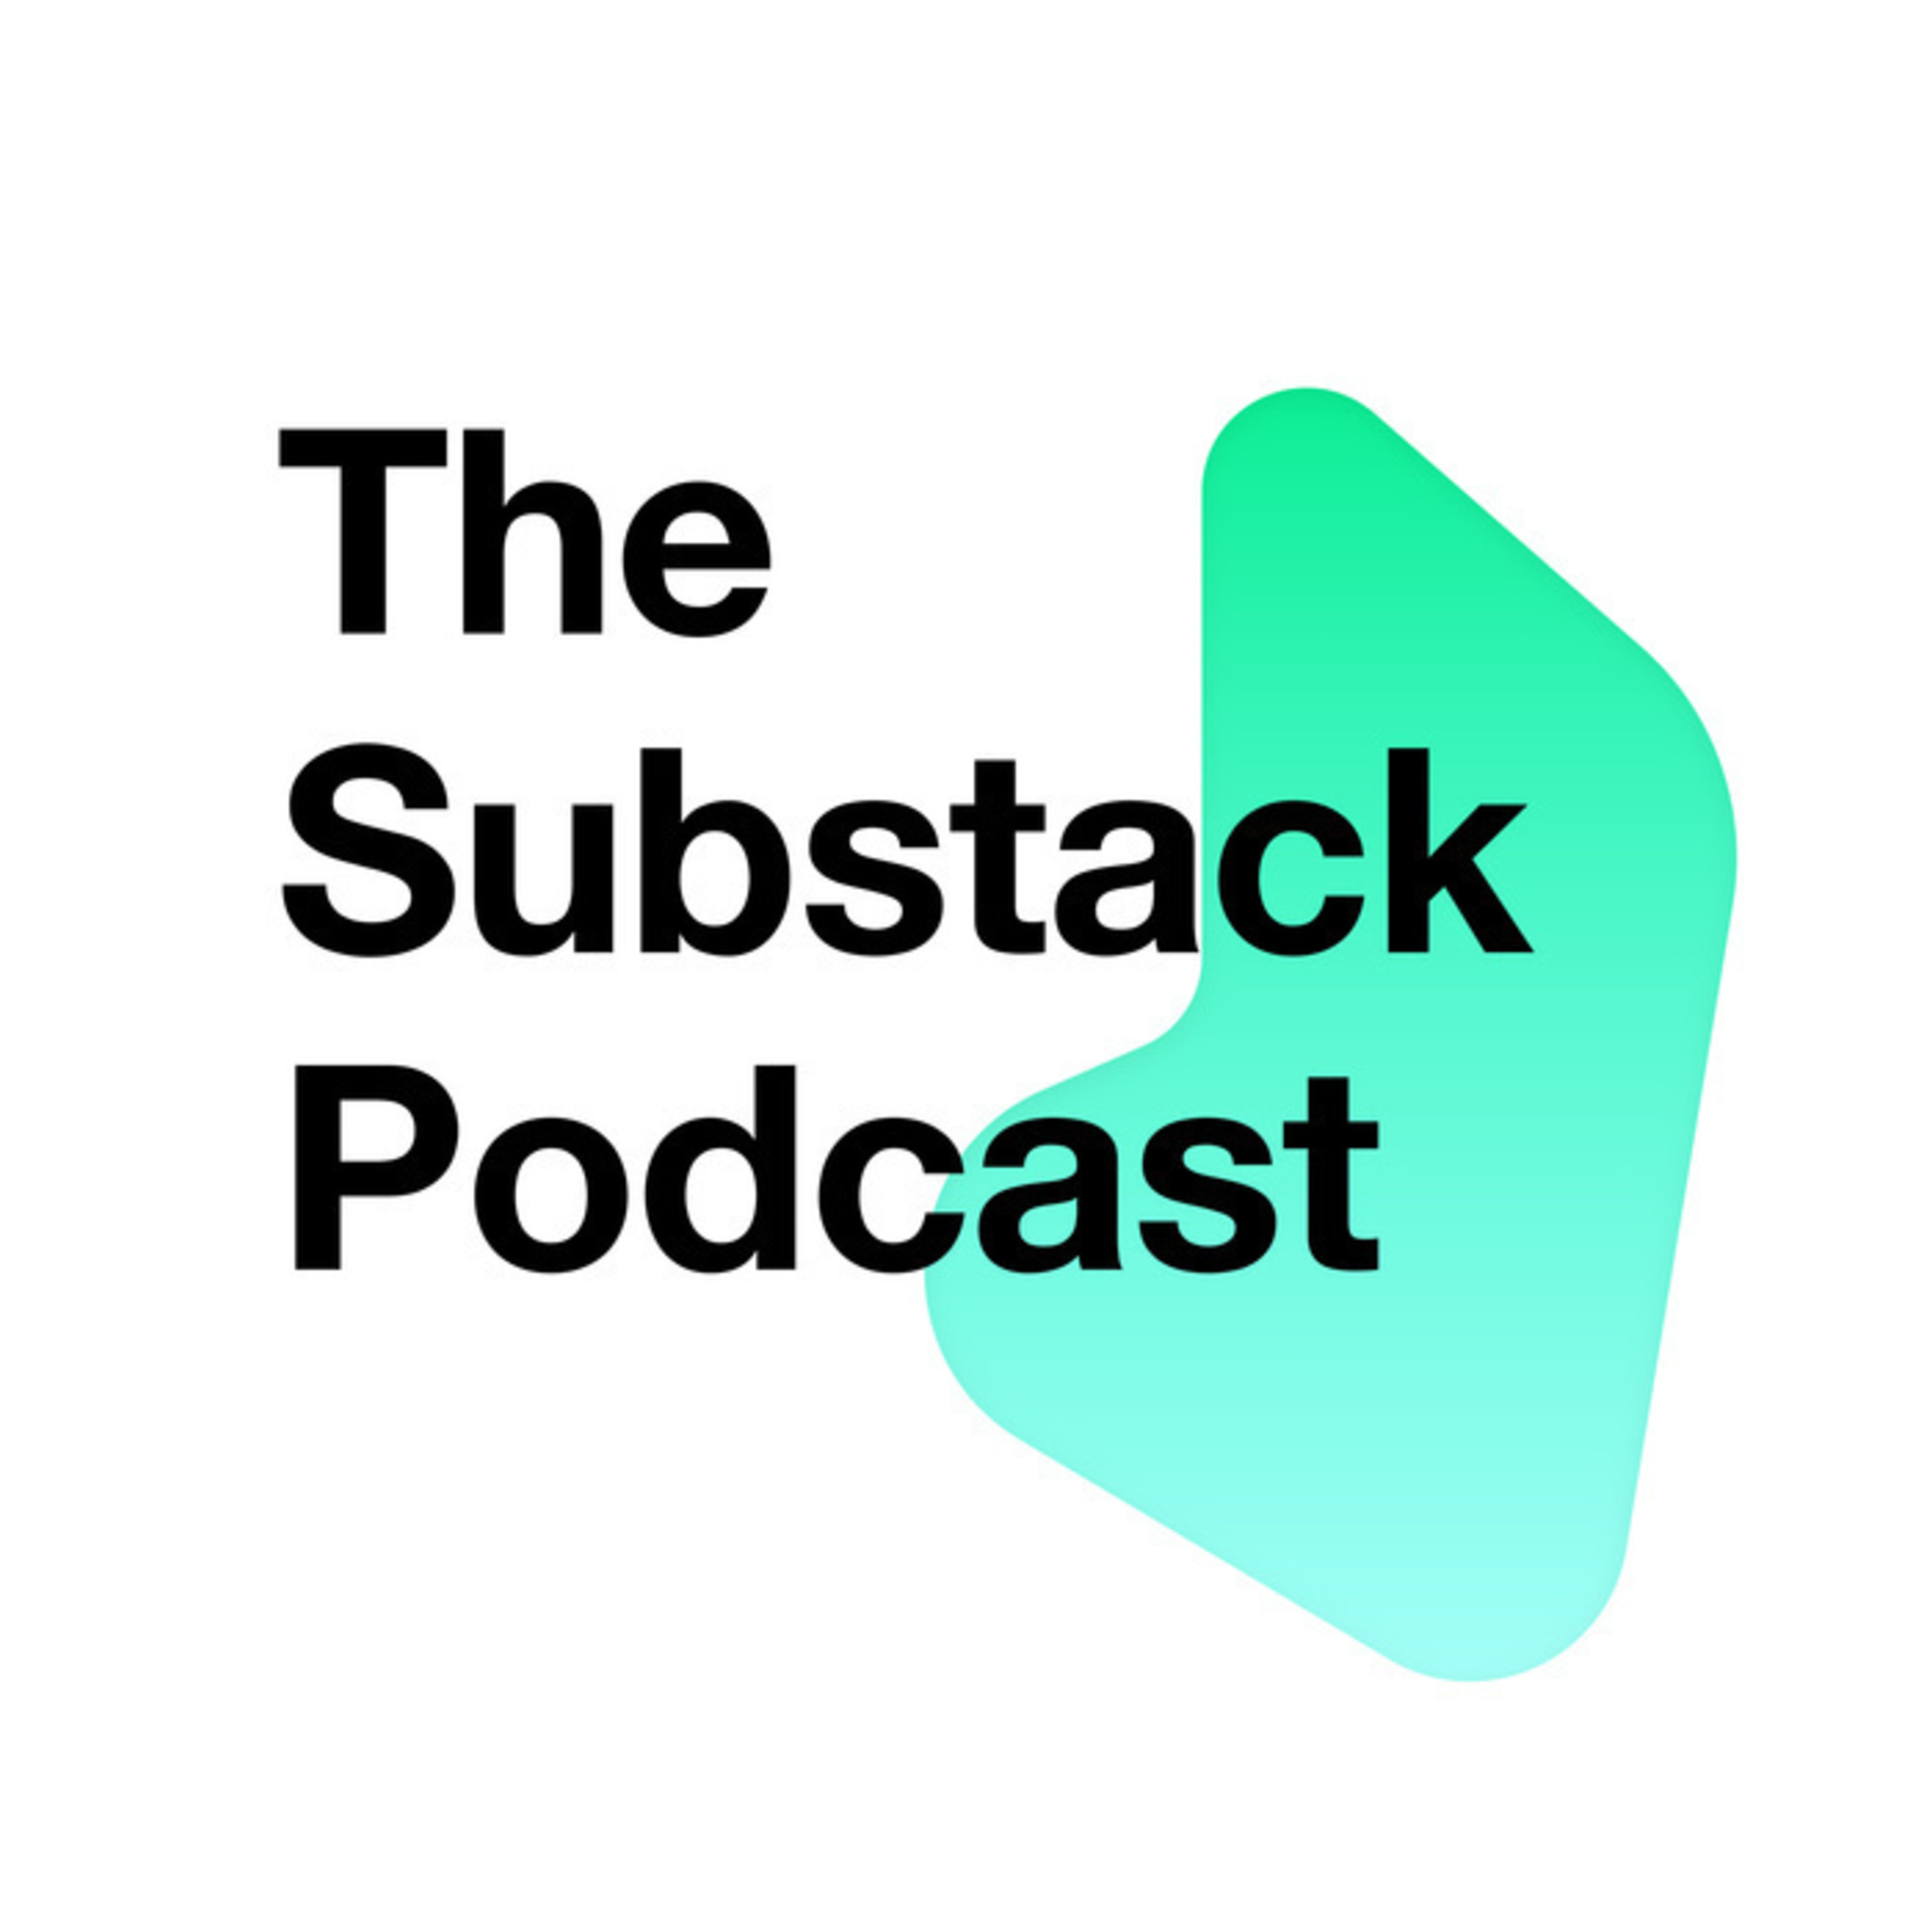 #005 - Walt Hickey of Numlock (previously FiveThirtyEight) on why you should write every day, deliver via email, and charge readers directly.